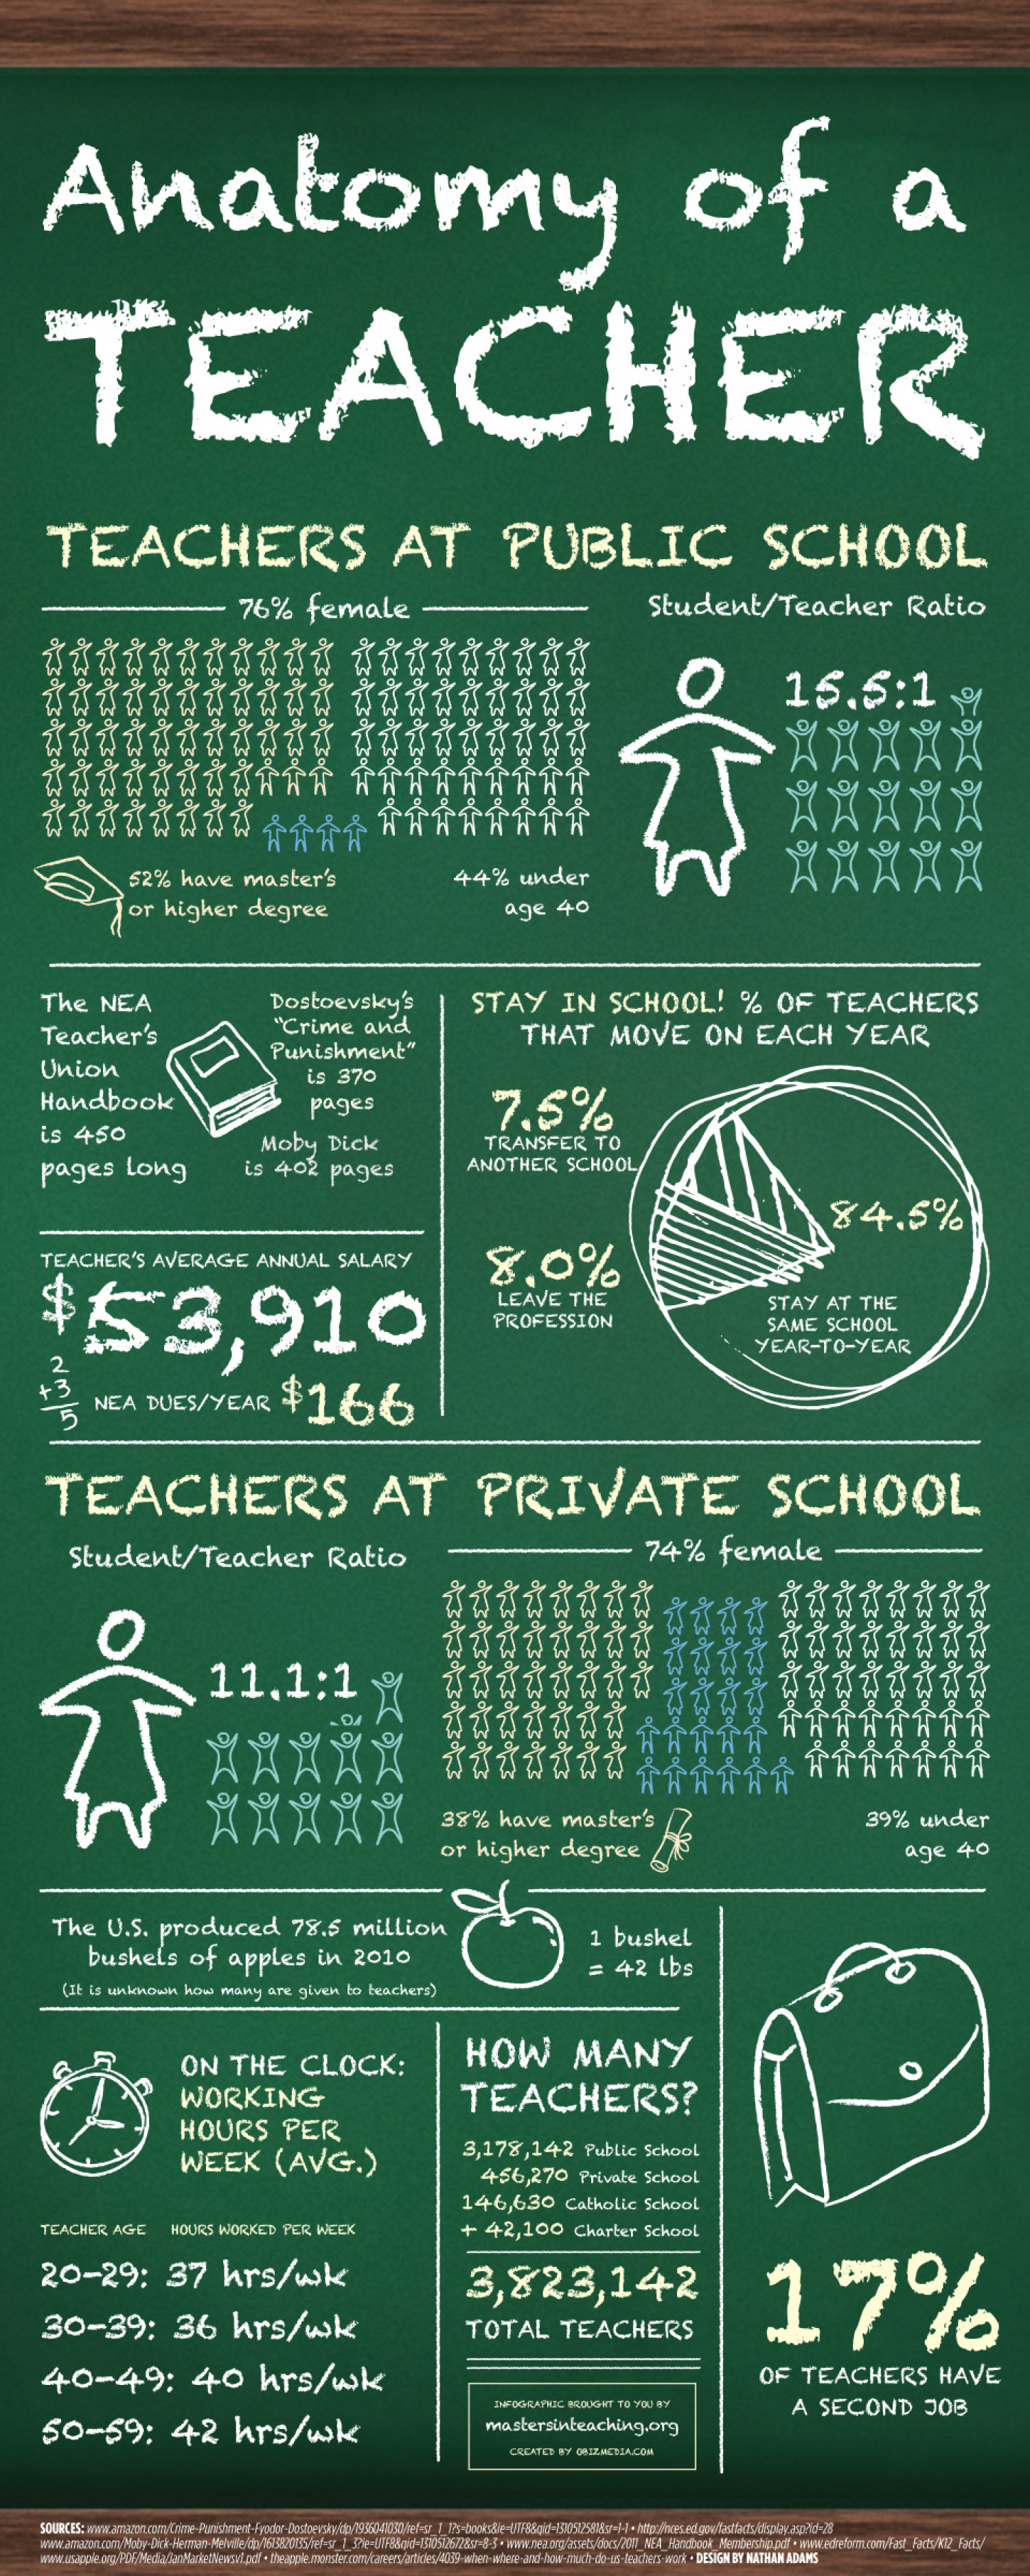 Anatomy Of a Teacher Infographic